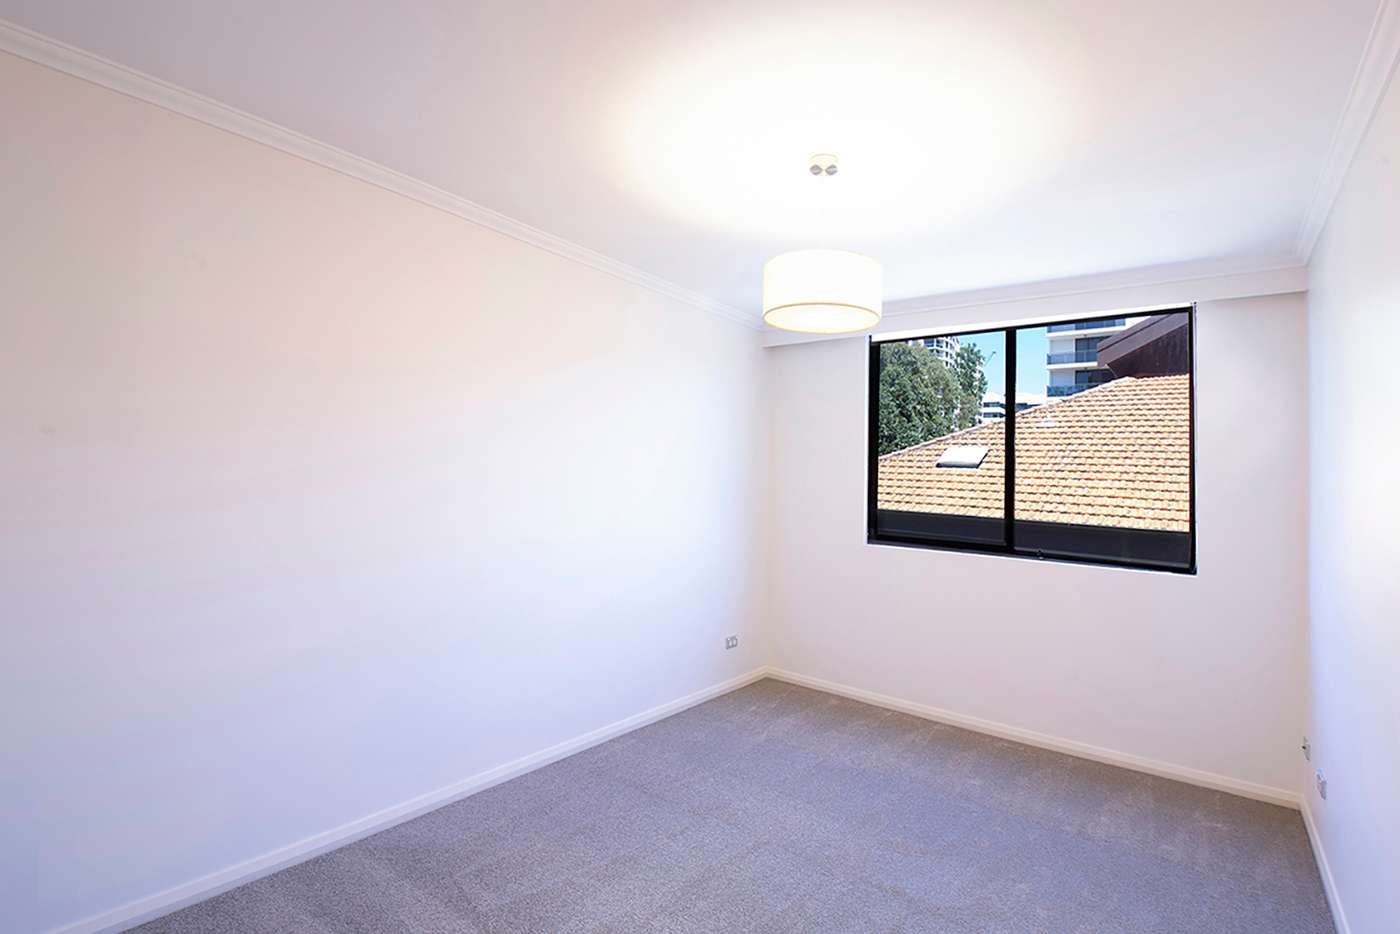 Sixth view of Homely apartment listing, 25/13 Herbert Street, St Leonards NSW 2065